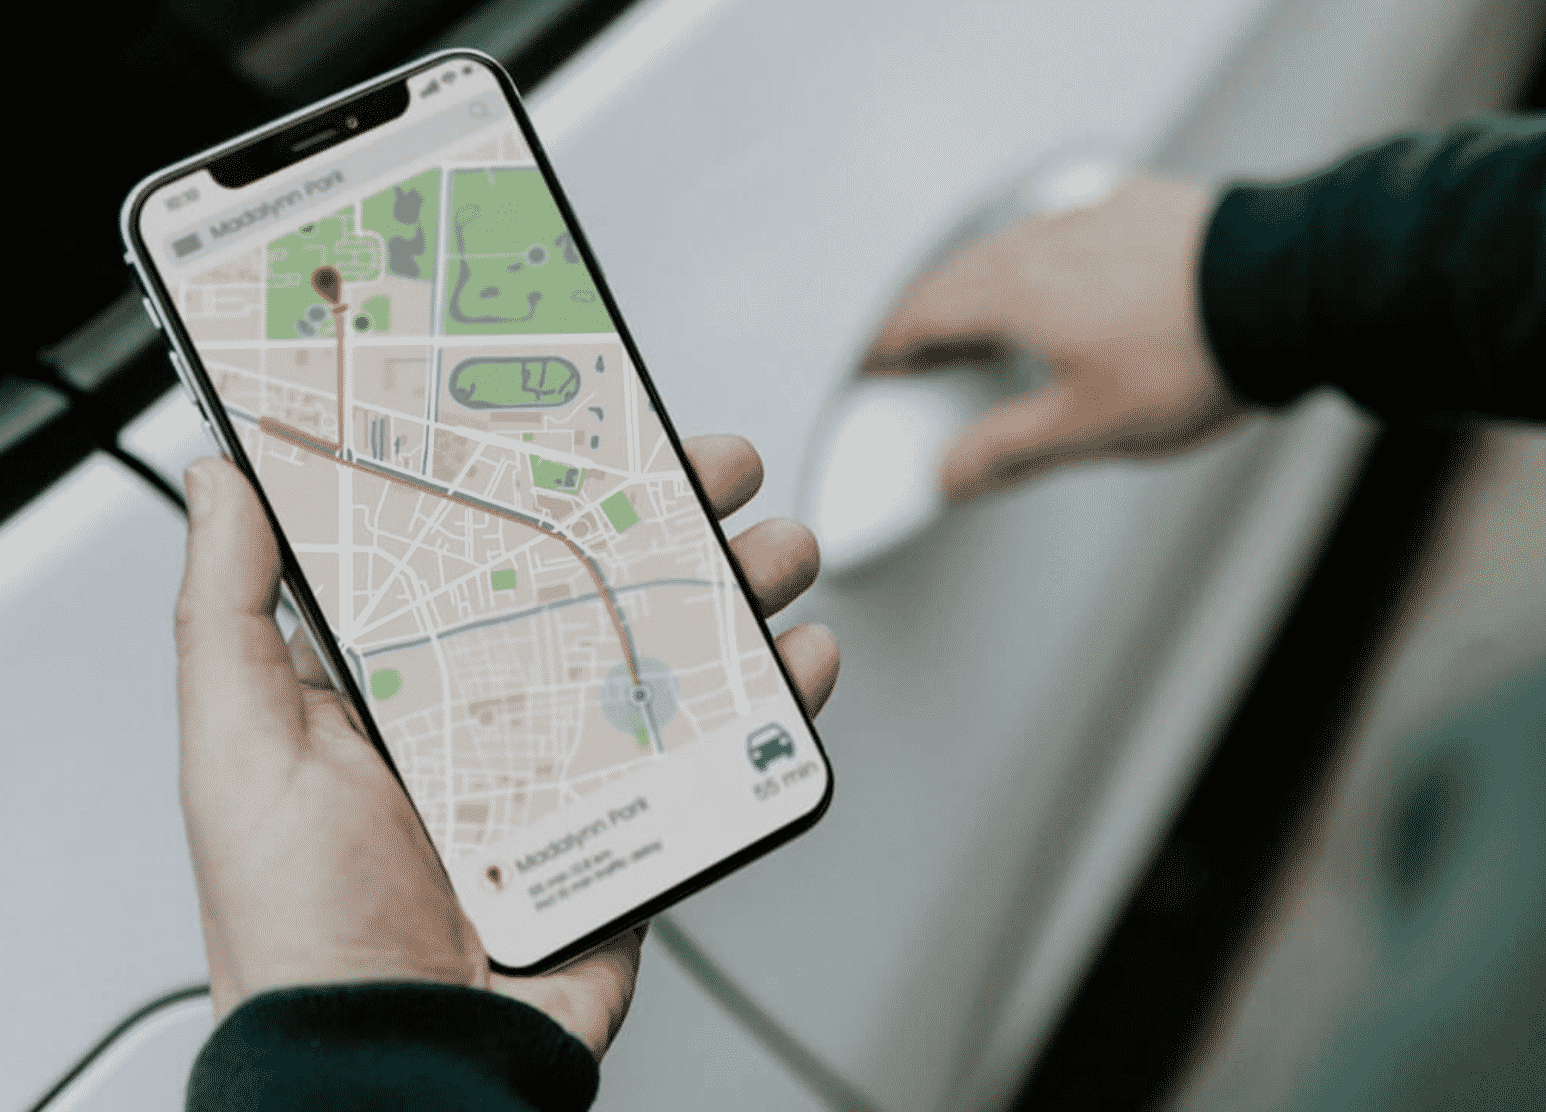 7 Best Online Mobile Location Trackers by Phone Number [Updated 2020]